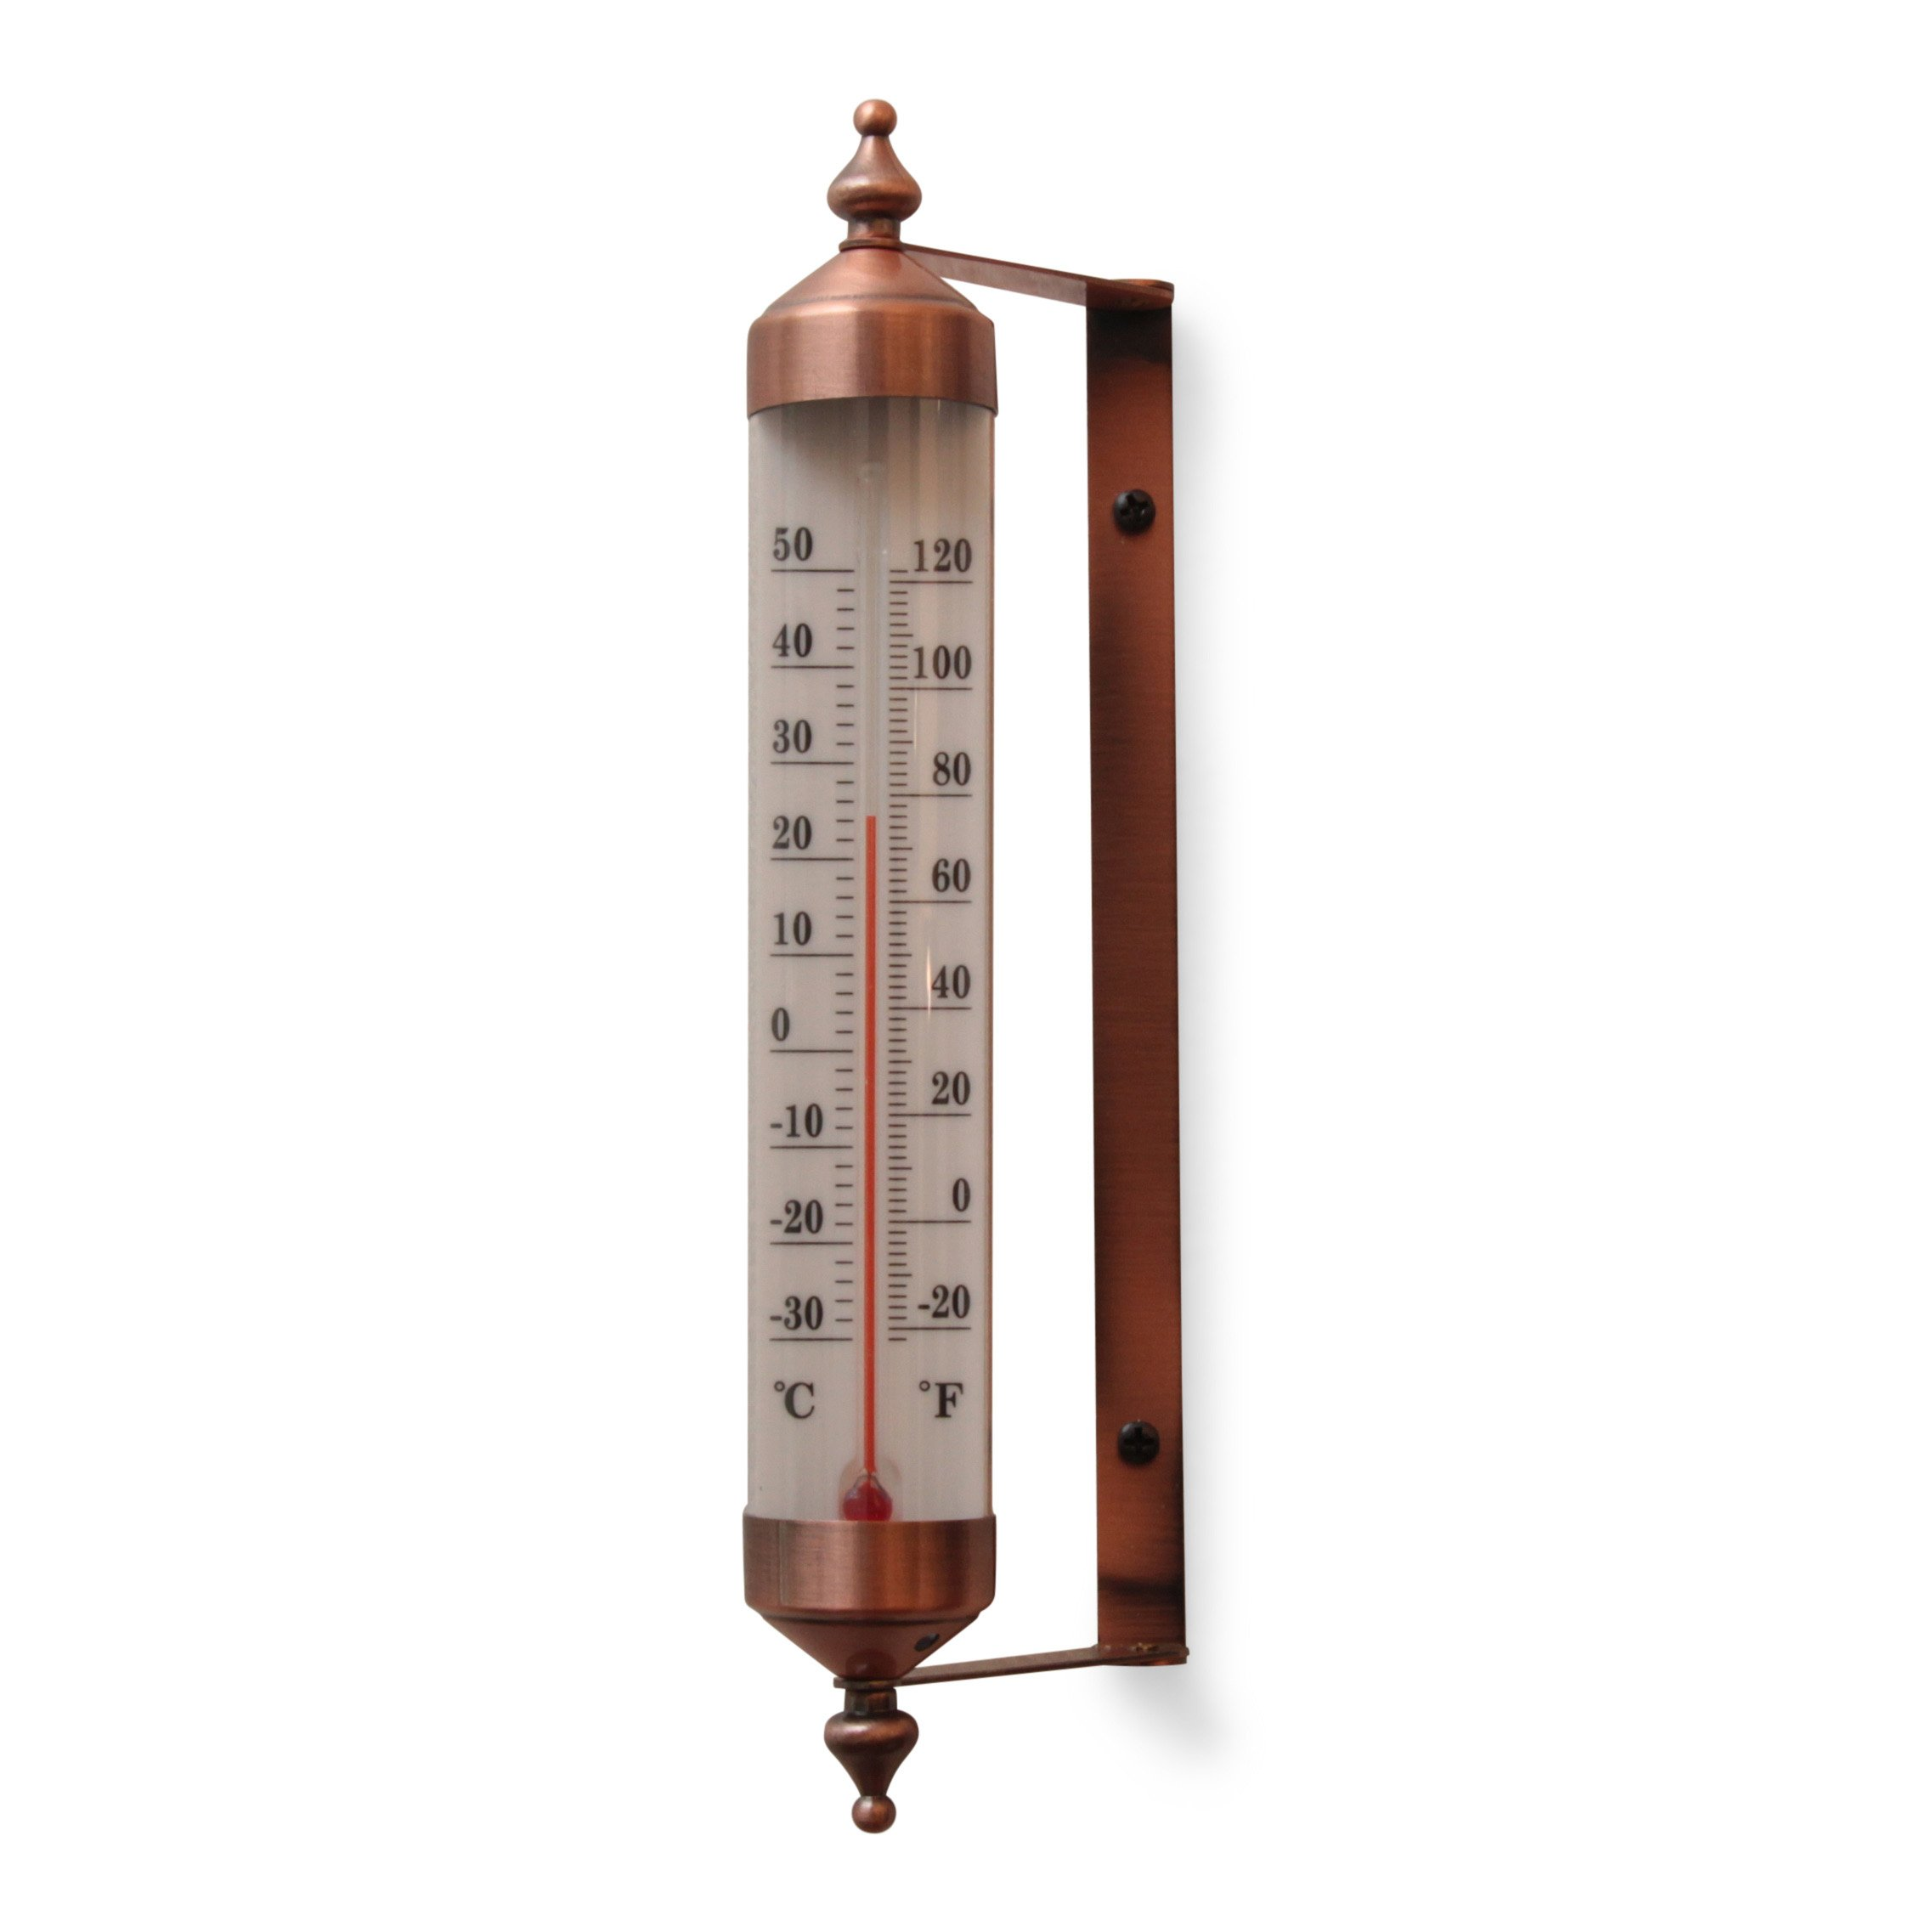 Antique Copper Finish Adjustable Angle 10 Inch Garden Thermometer